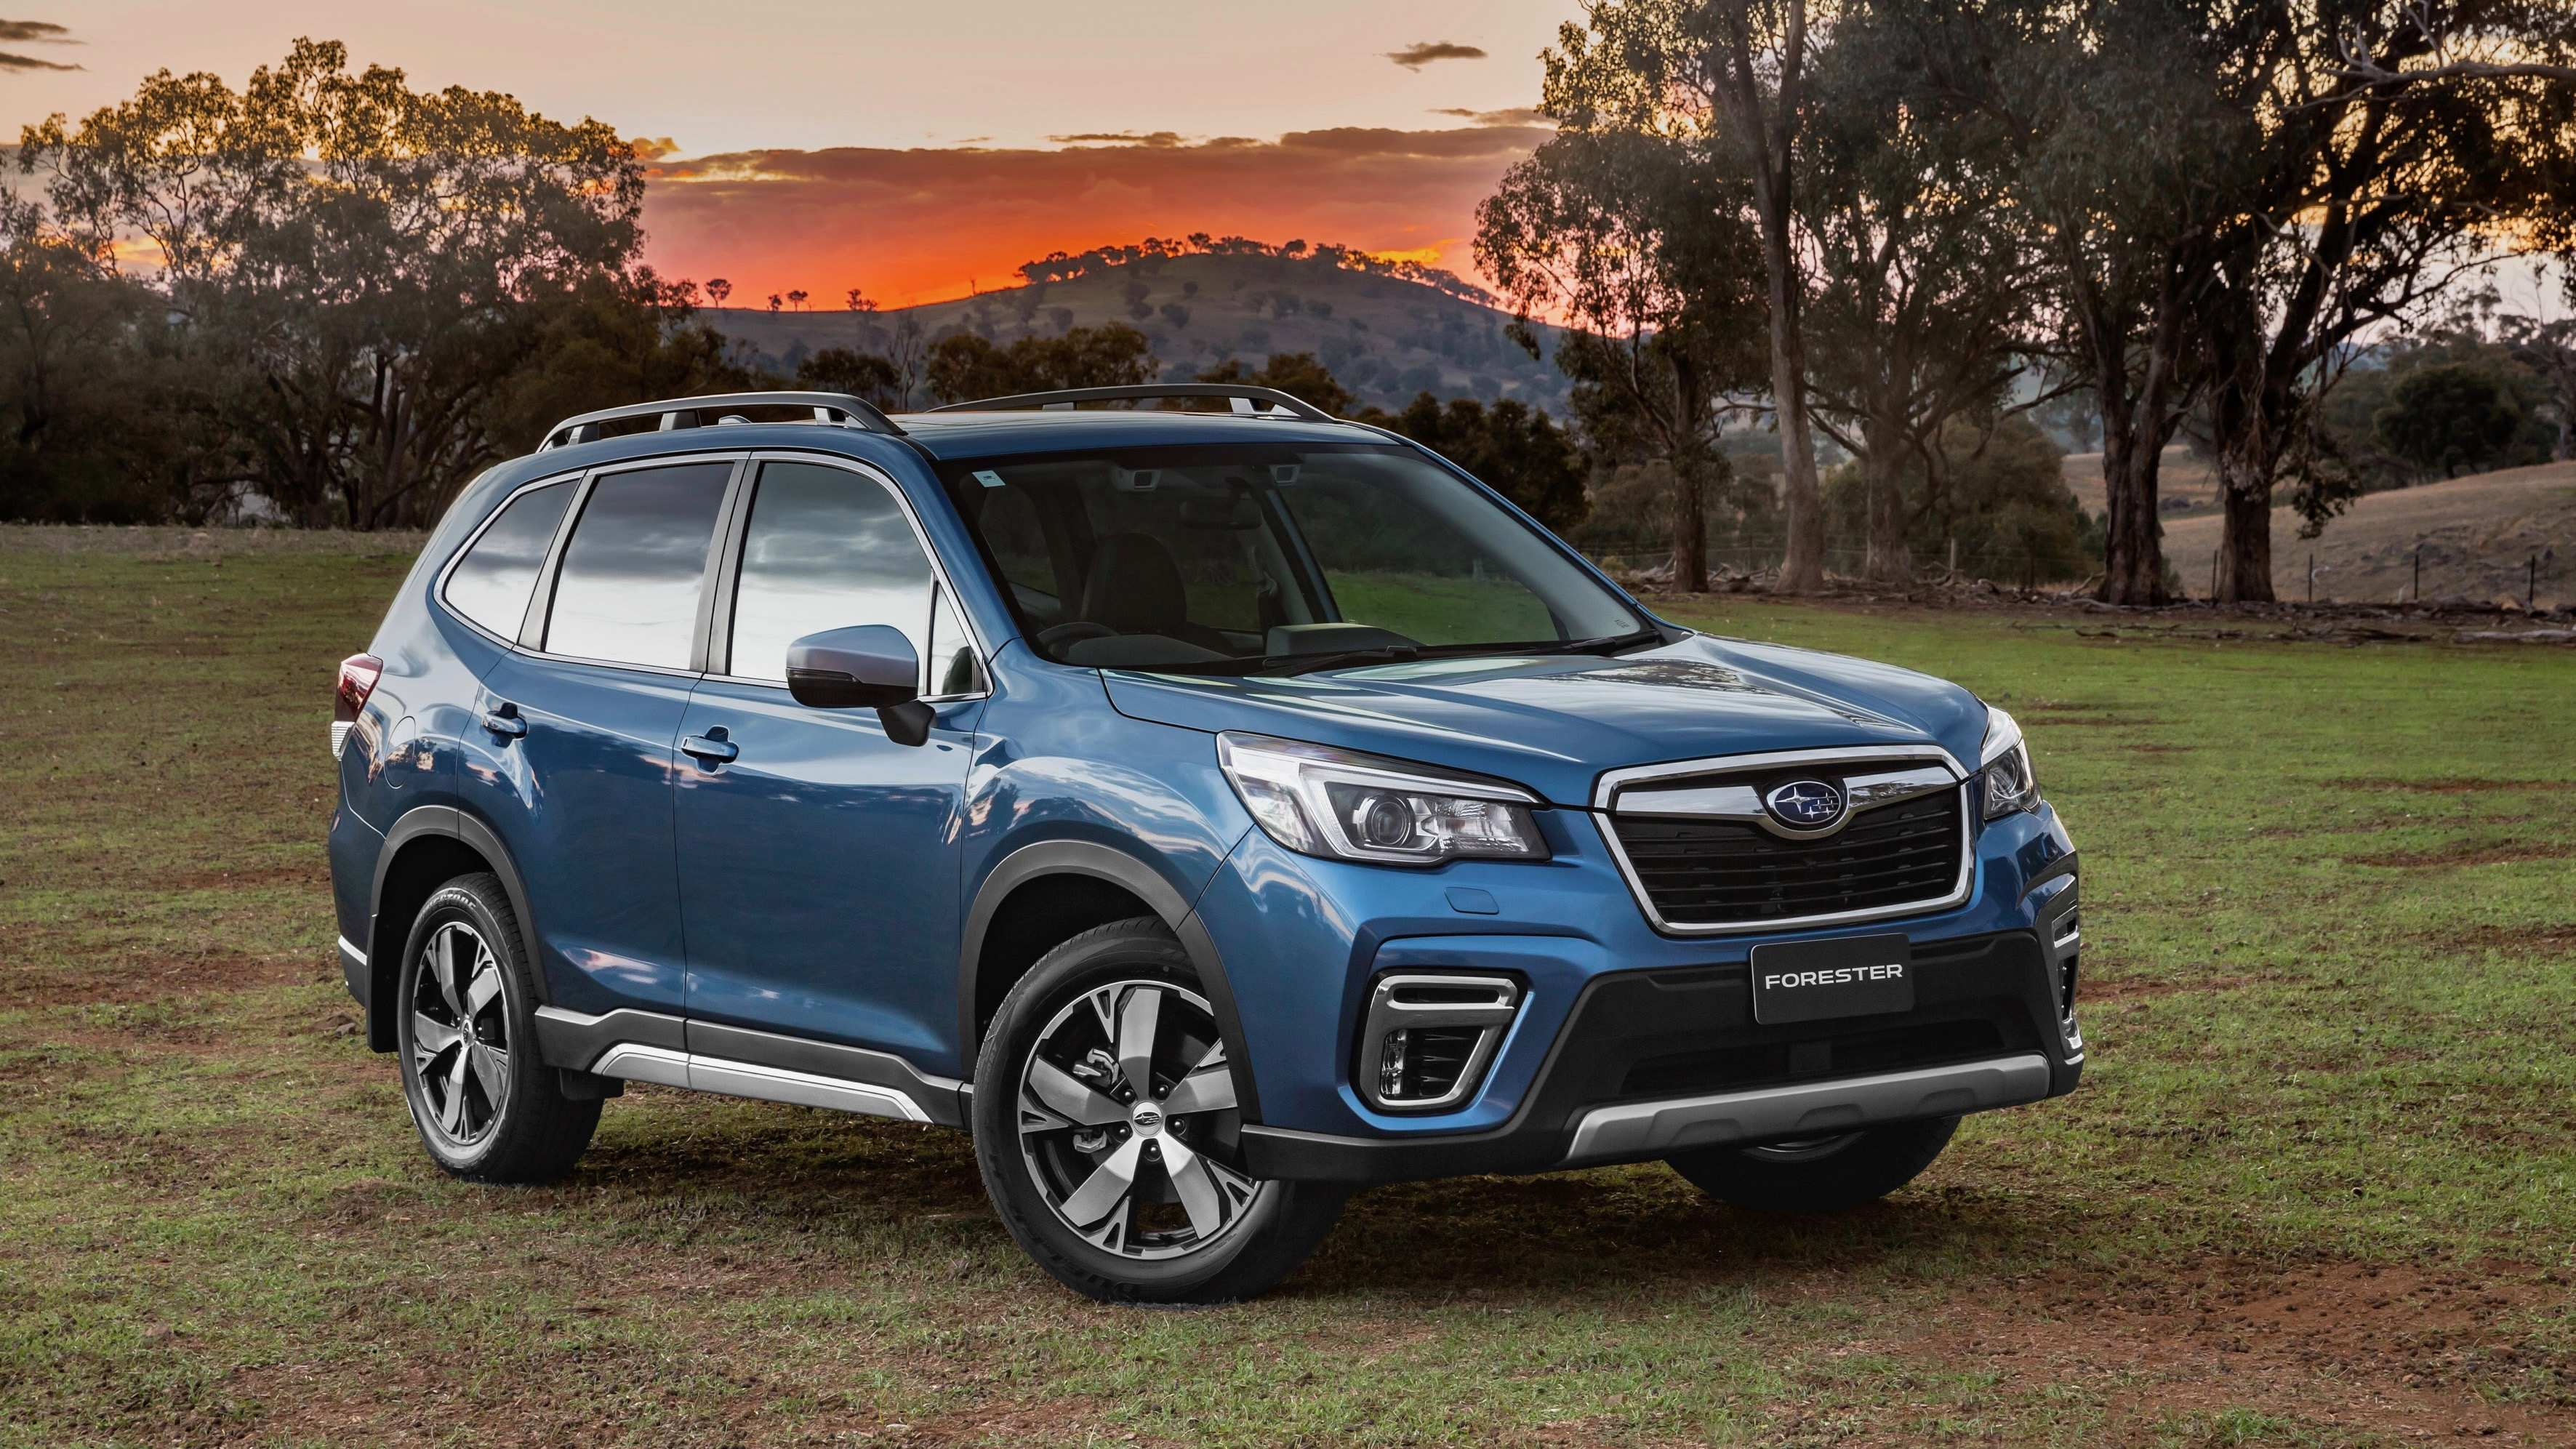 11 All New Subaru Forester 2019 News Wallpaper